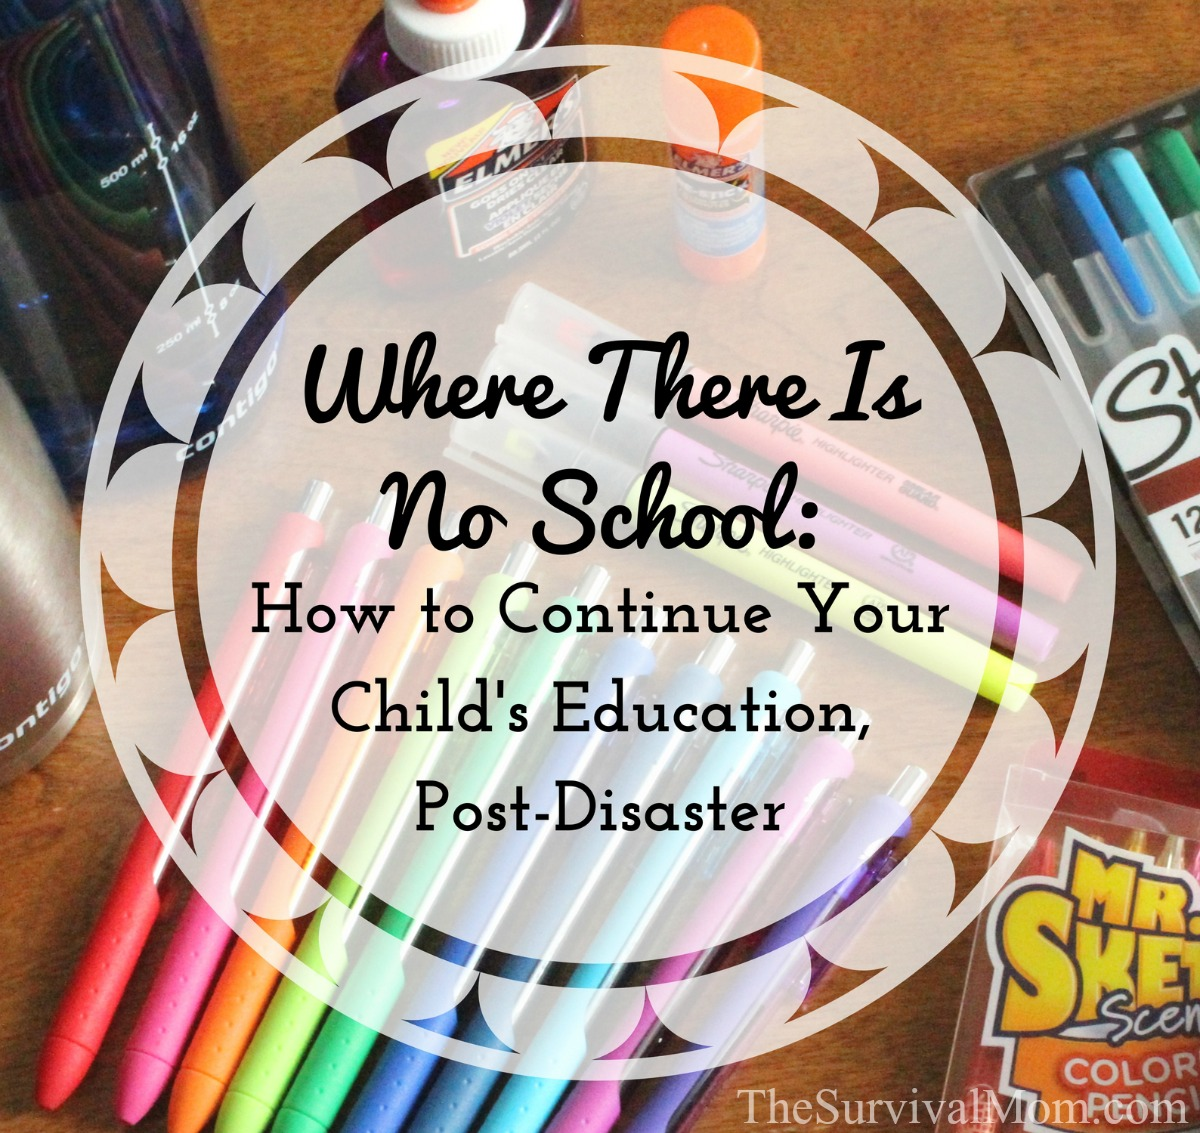 Where There Is No School How to continue your child's education post-disaster via The Survival Mom